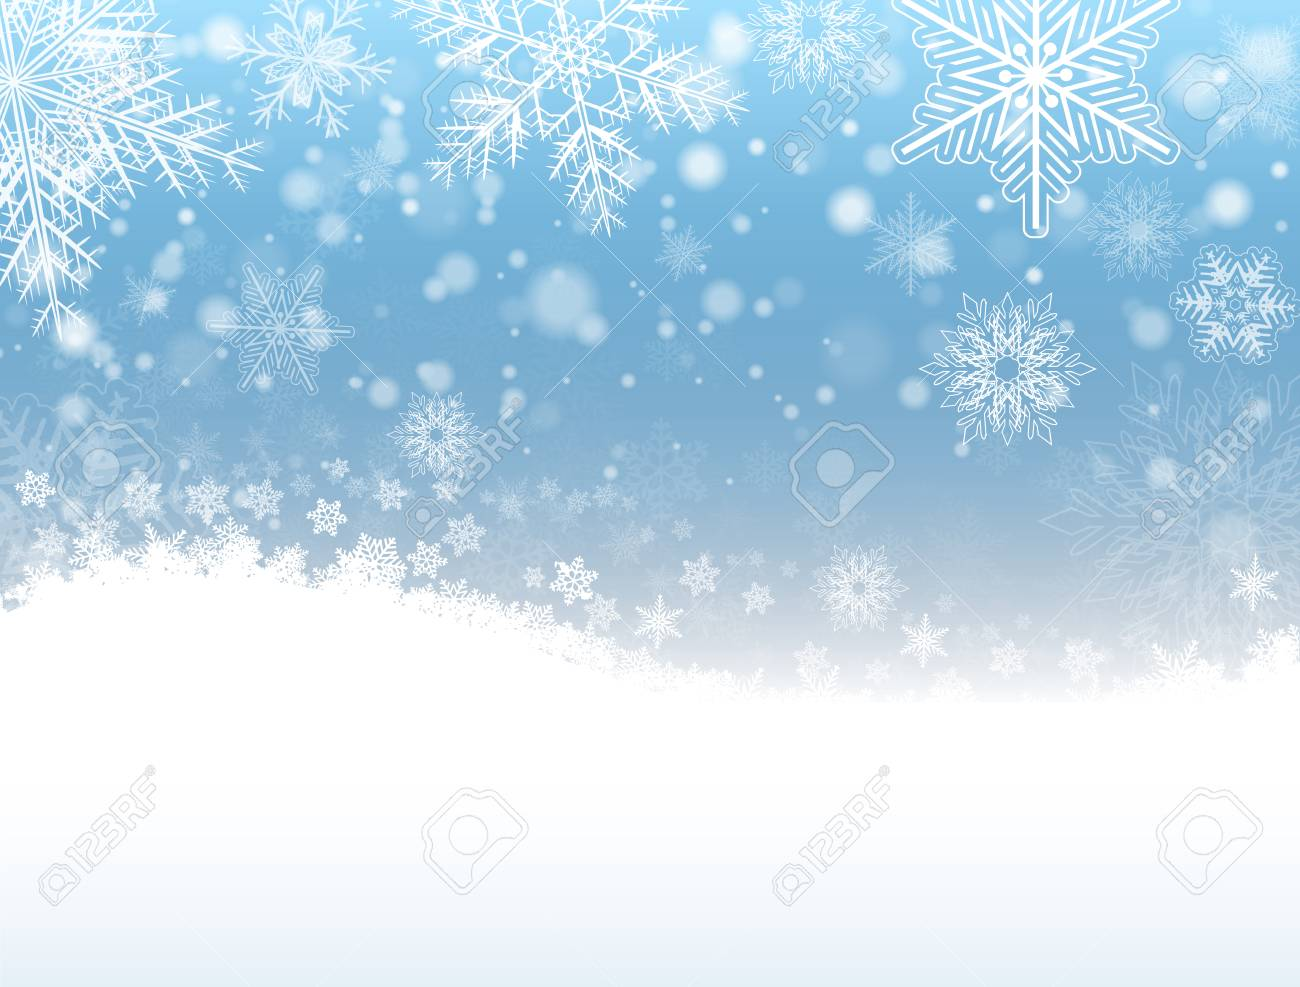 christmas background with snowflakes winter snow background